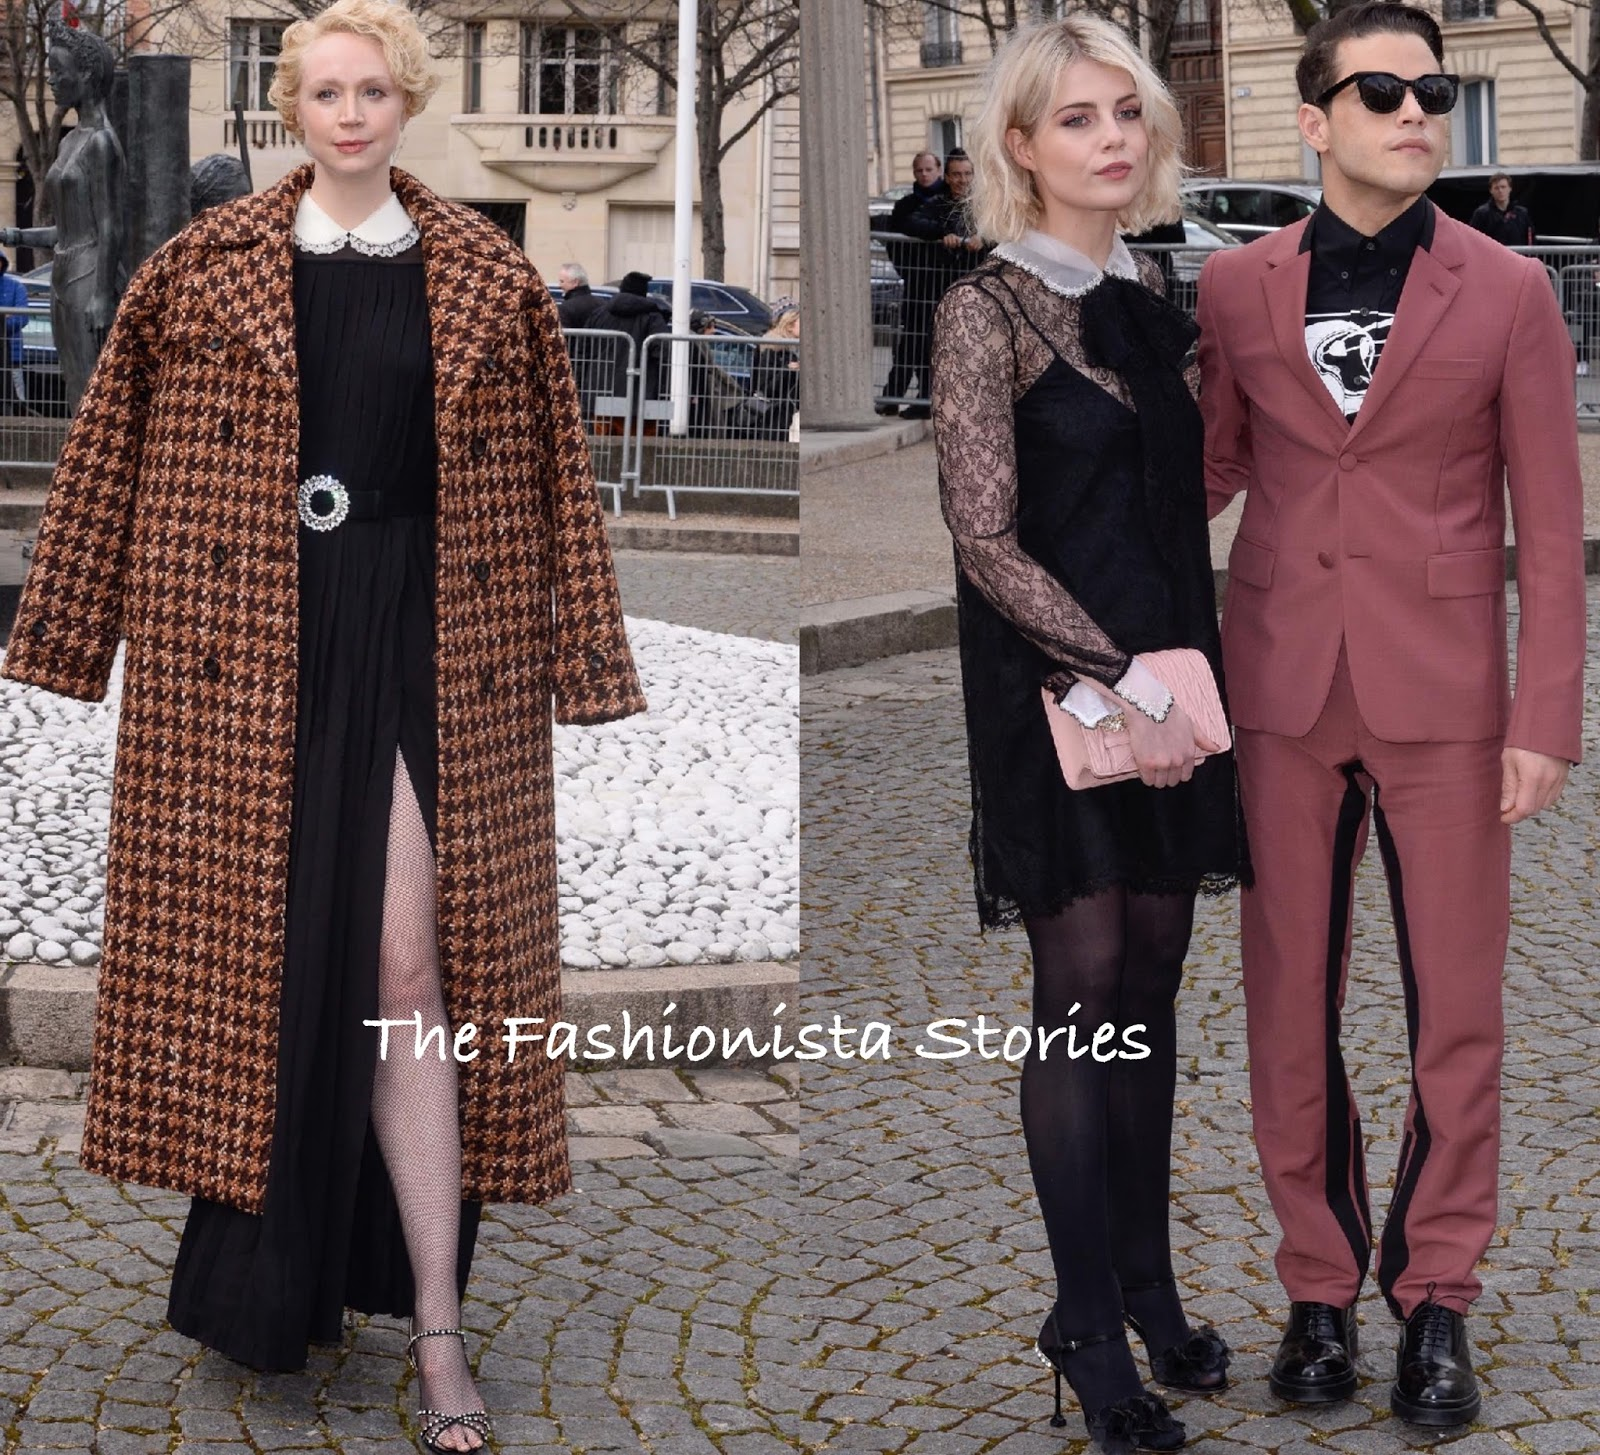 e69c4879eb5f Gwendoline Christie worked the split on her PRE-FALL 2018 black long sleeve  pleated dress with a white peter pane